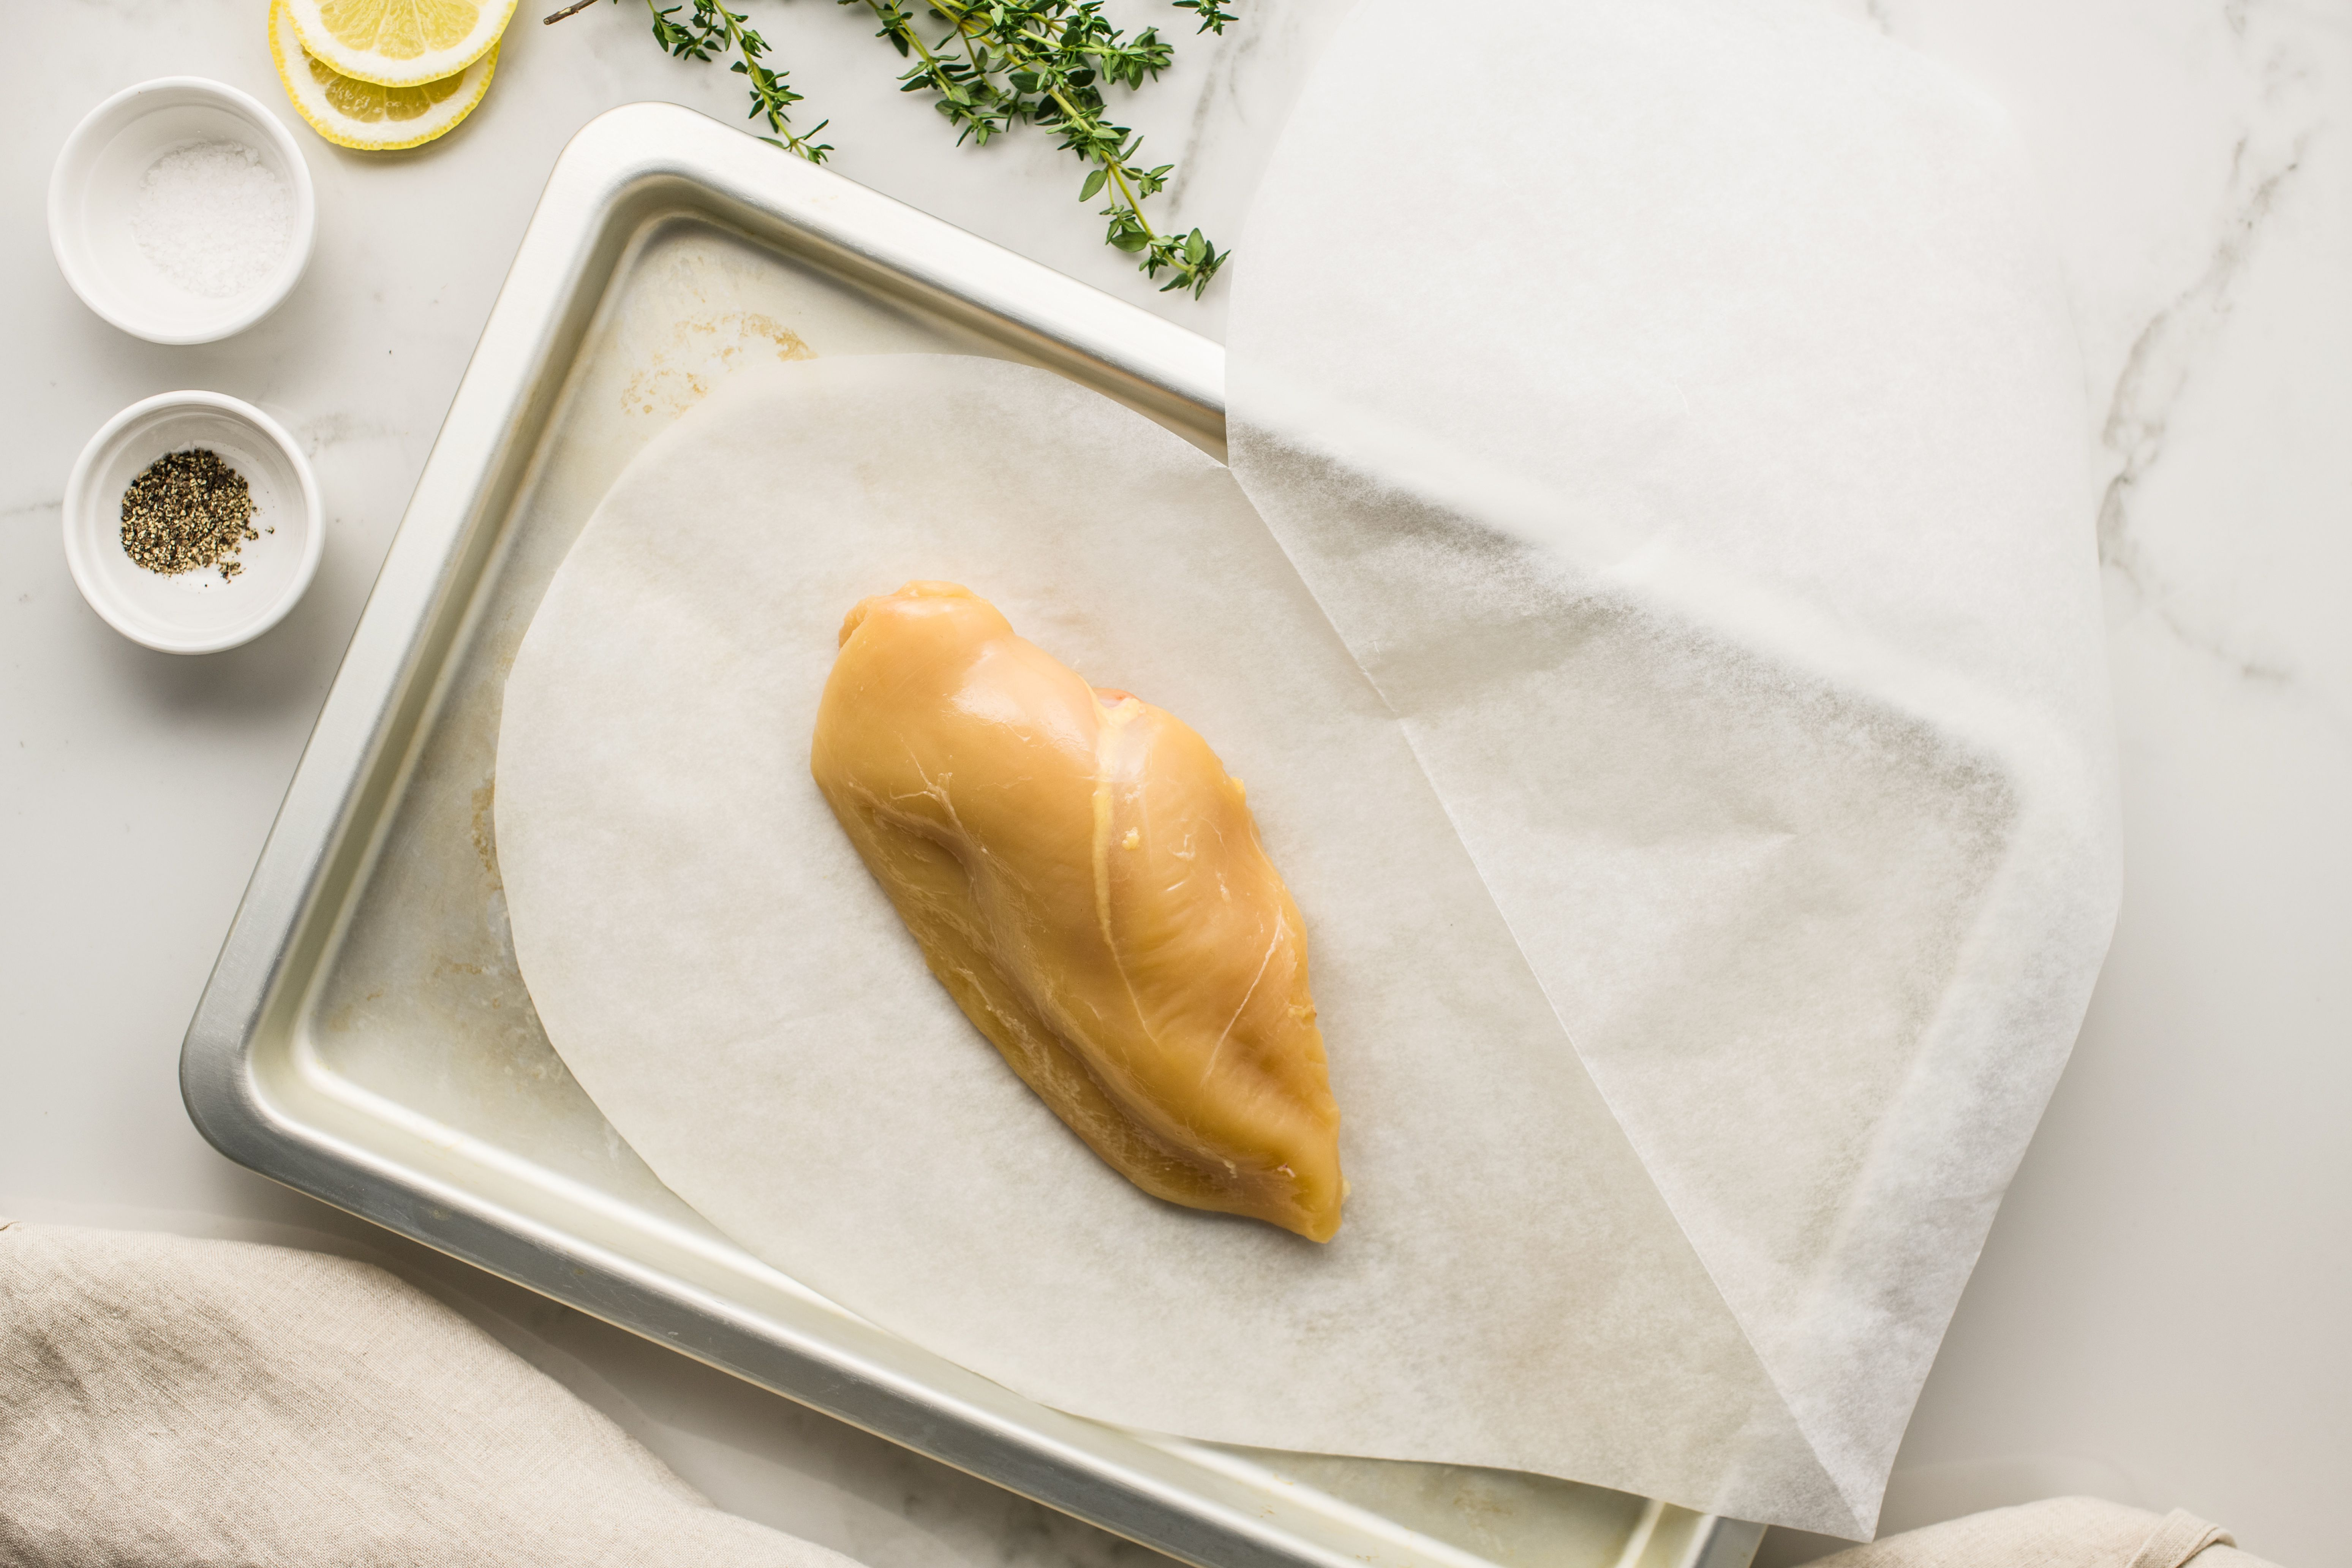 Place chicken breast in center of heart-shaped parchment paper